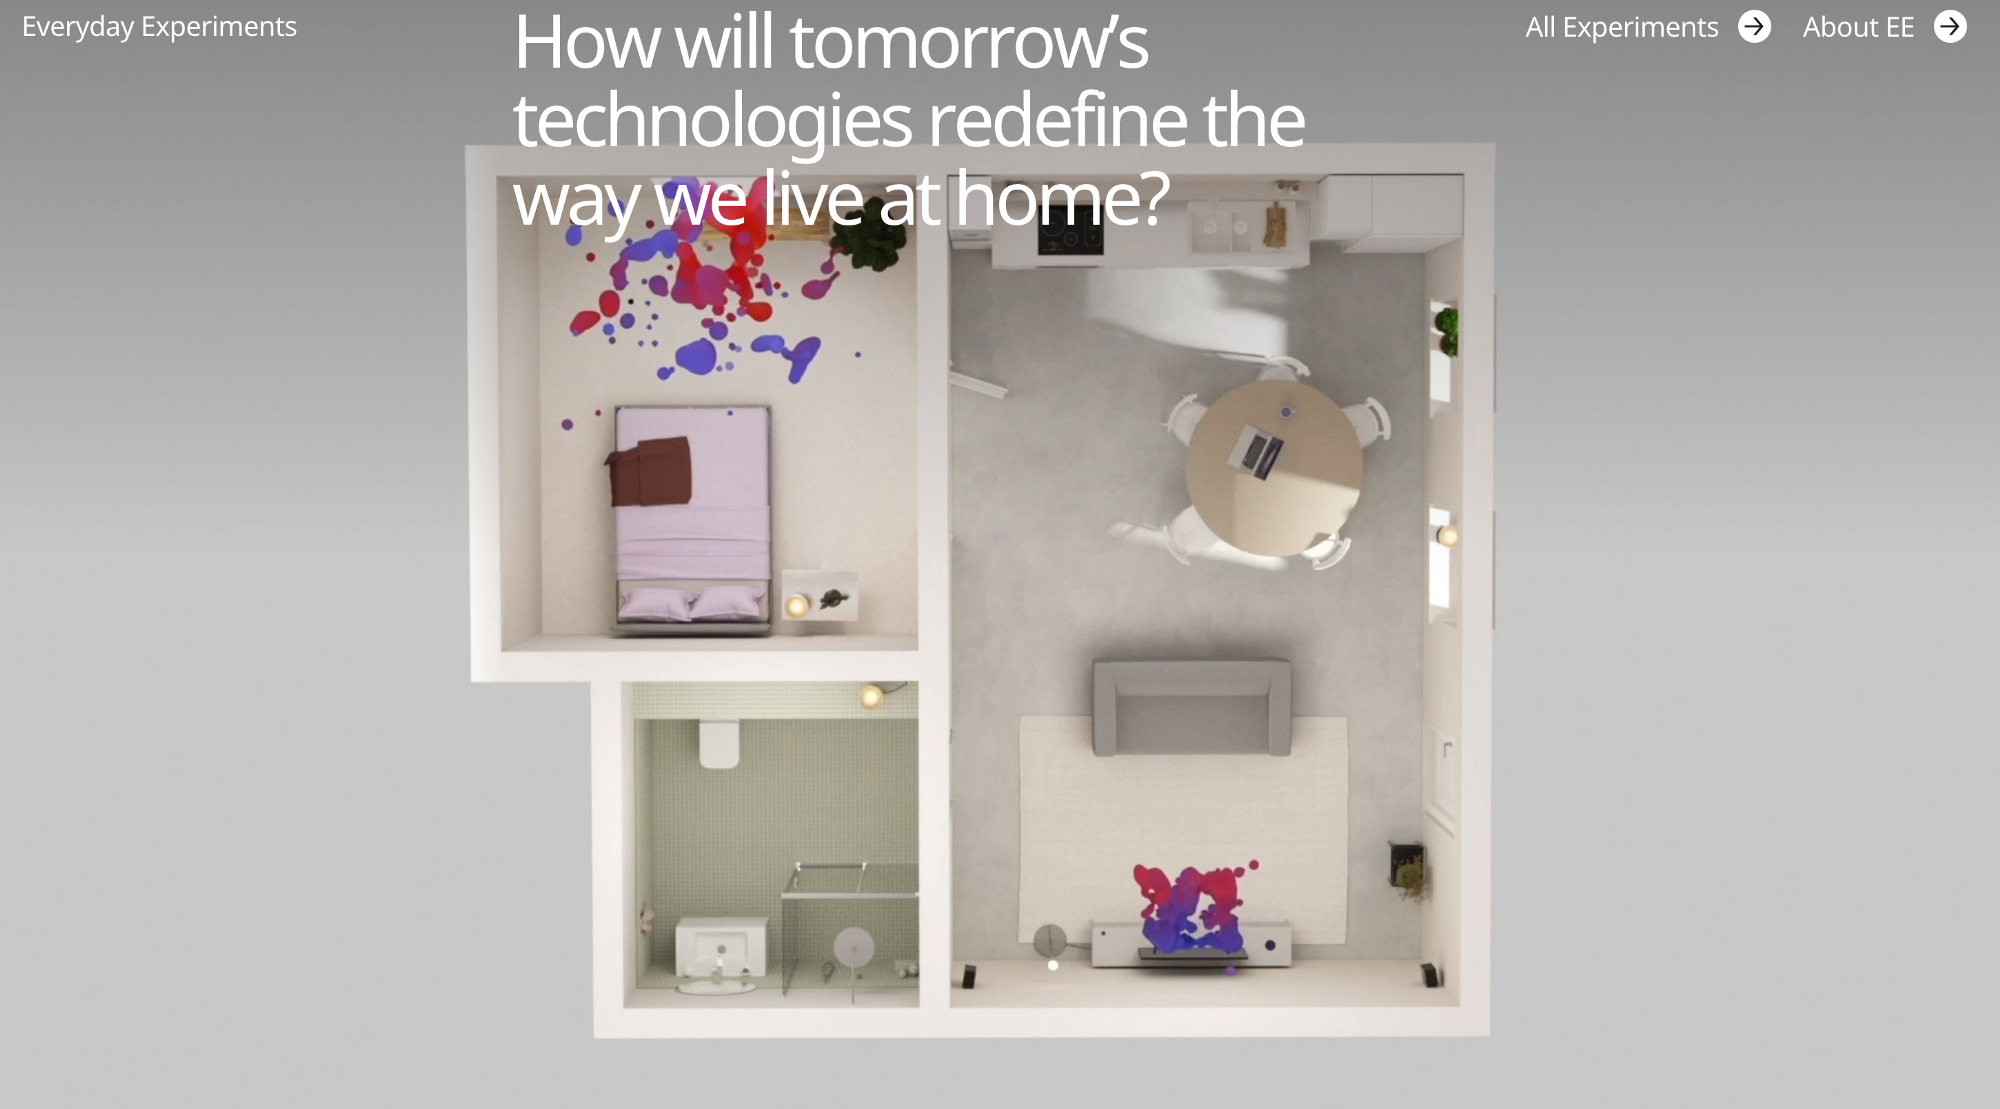 How will tomorrow's technologies redefine the way we live at home? We see a bird's eye view of an apartment floor plan, with red and blue ink projecting from some of the walls.